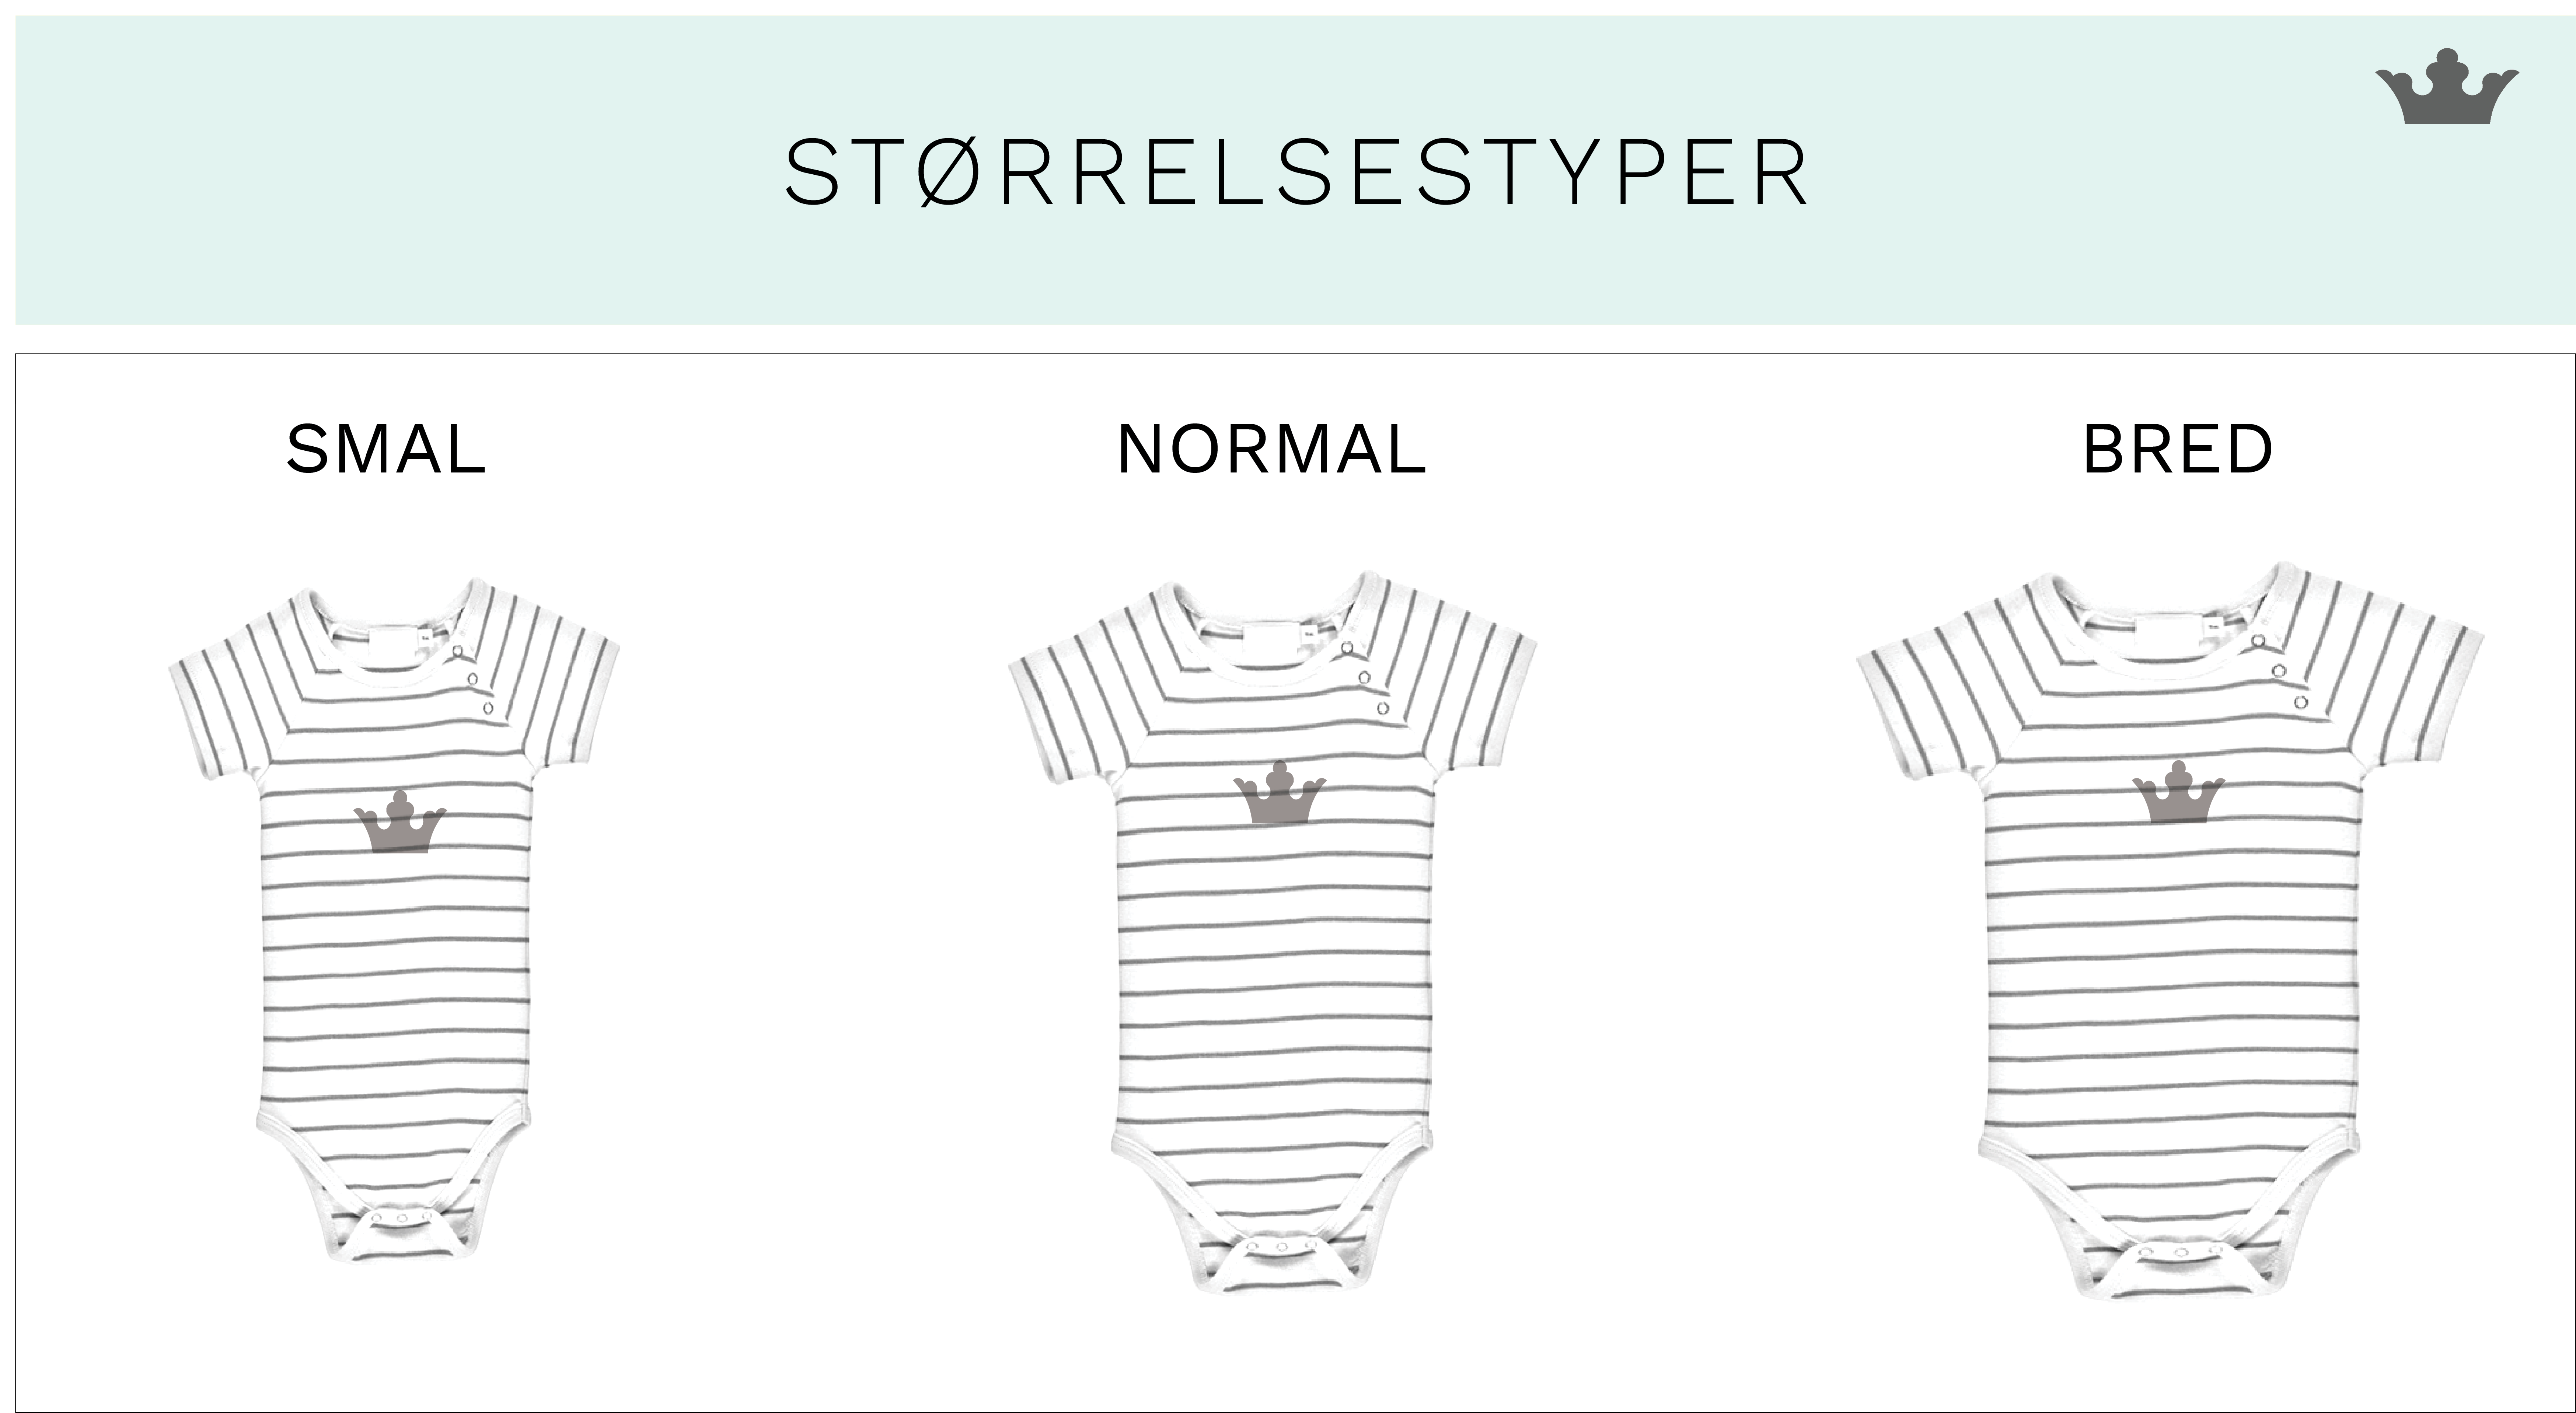 Stoerrelsesguide-body-smal-normal-bred